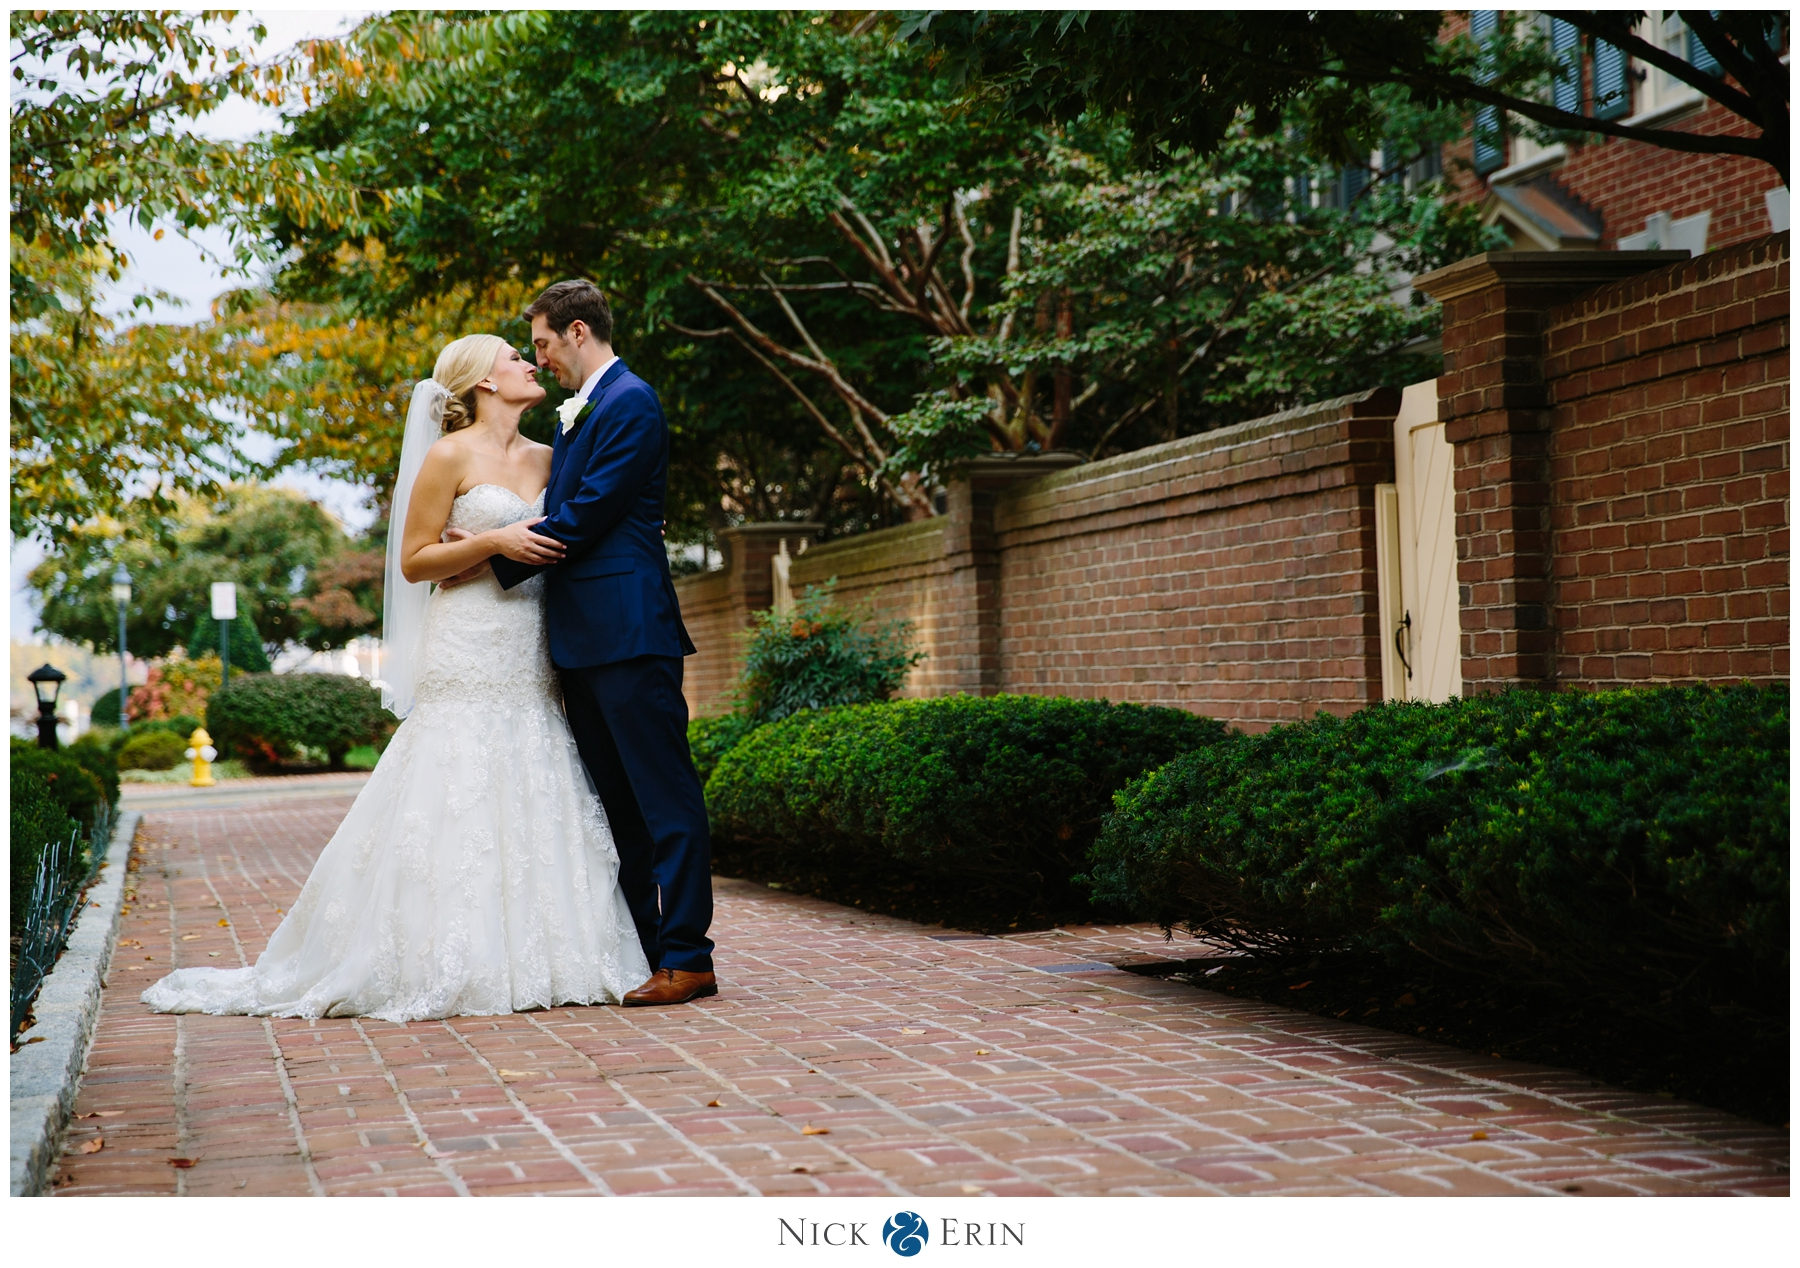 Donner_Photography_Torpedo Factory Wedding_Courtney and Scott_0008